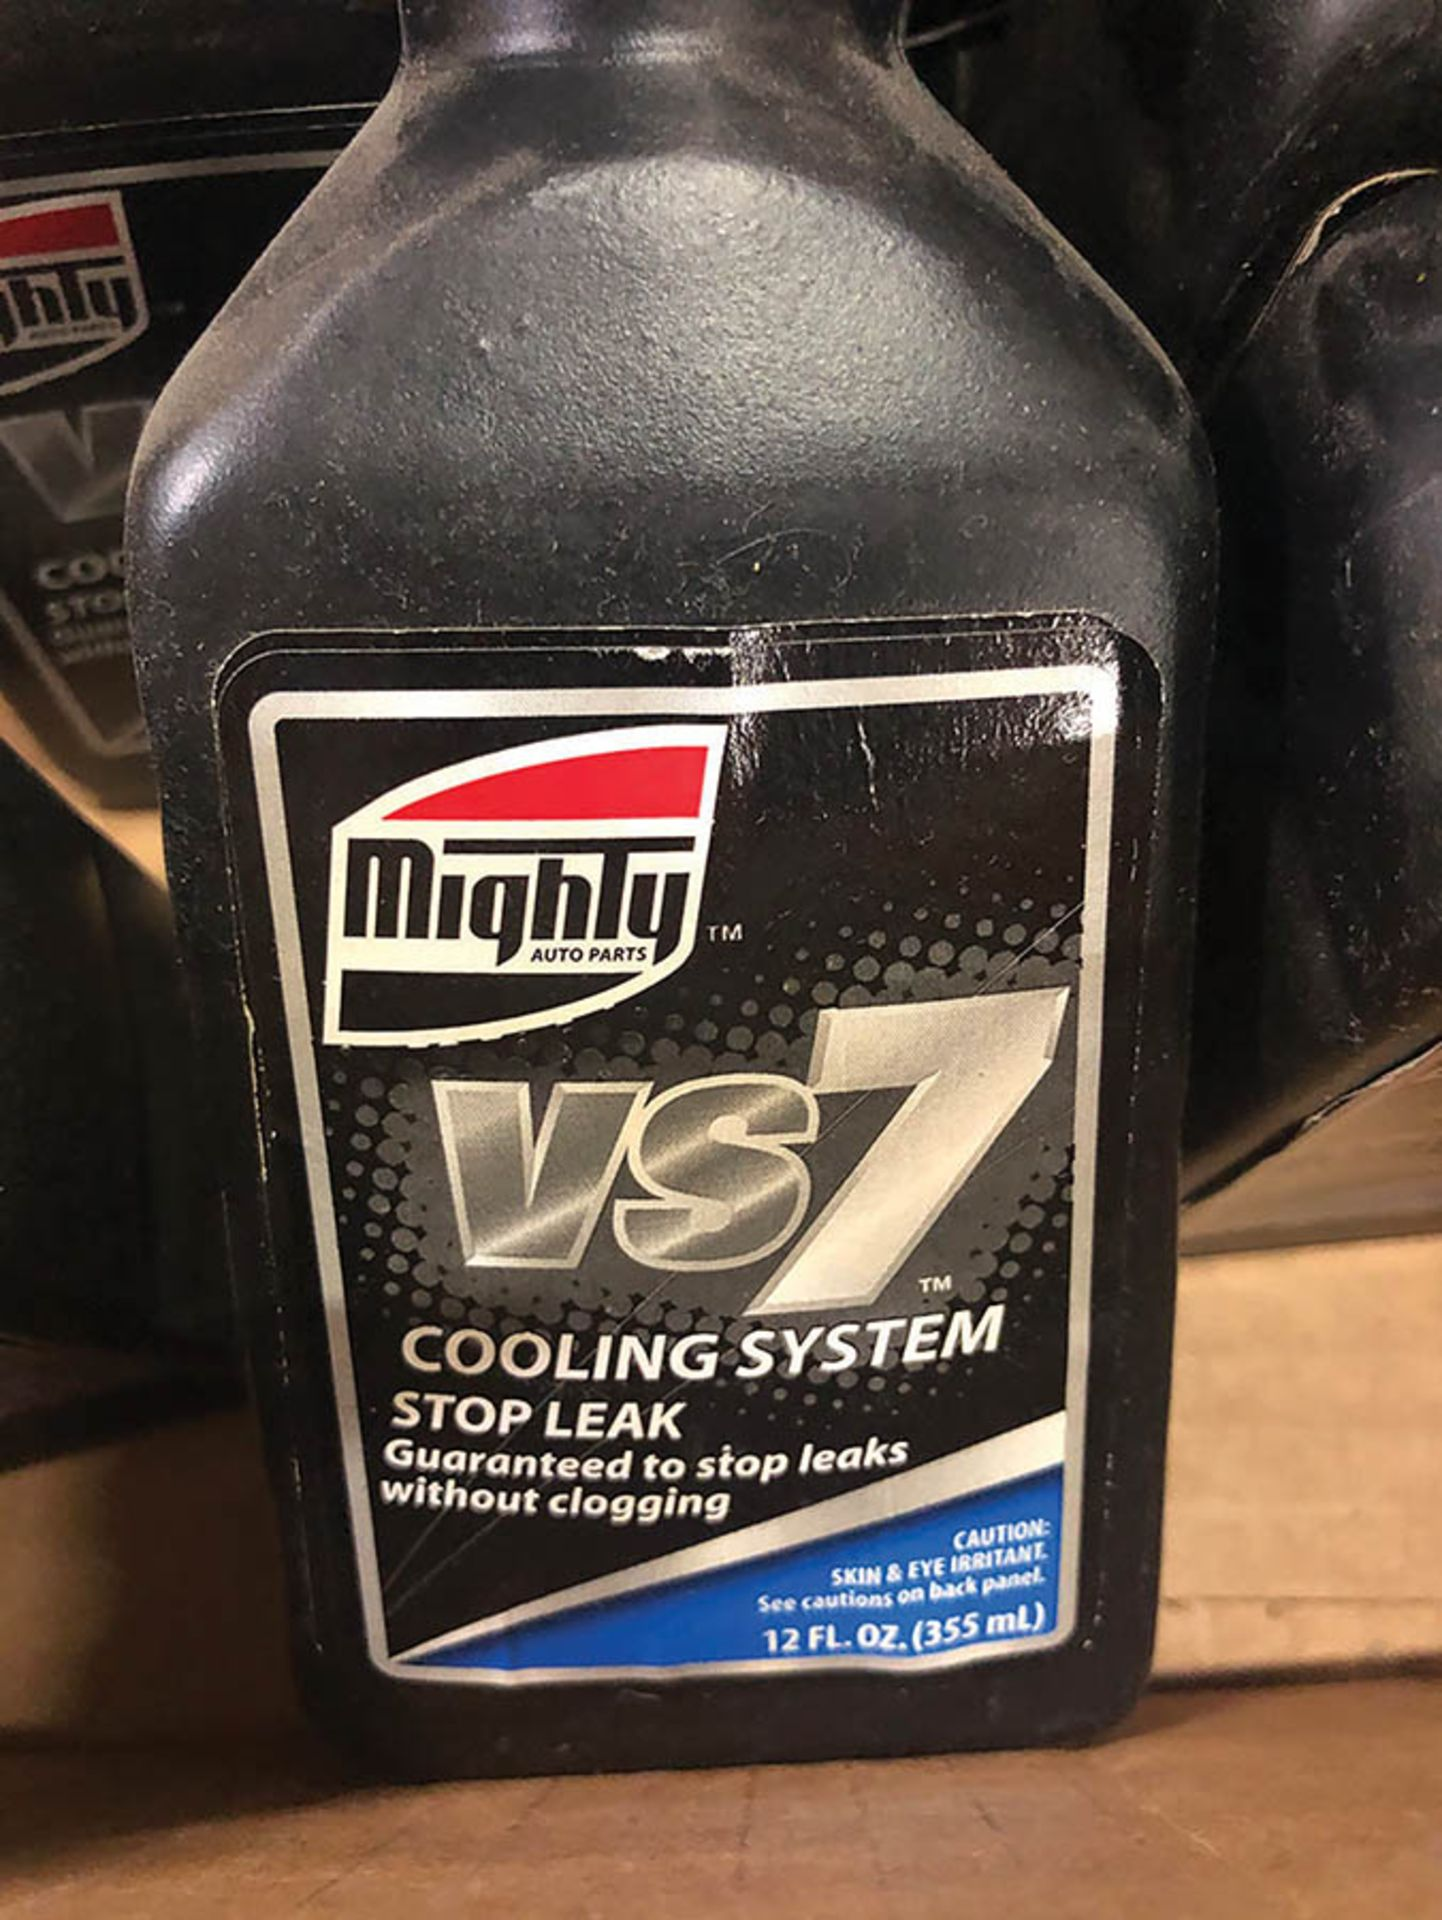 Lot 49 - (11) BOTTLES OF MIGHTY VS7 COOLING SYSTEM